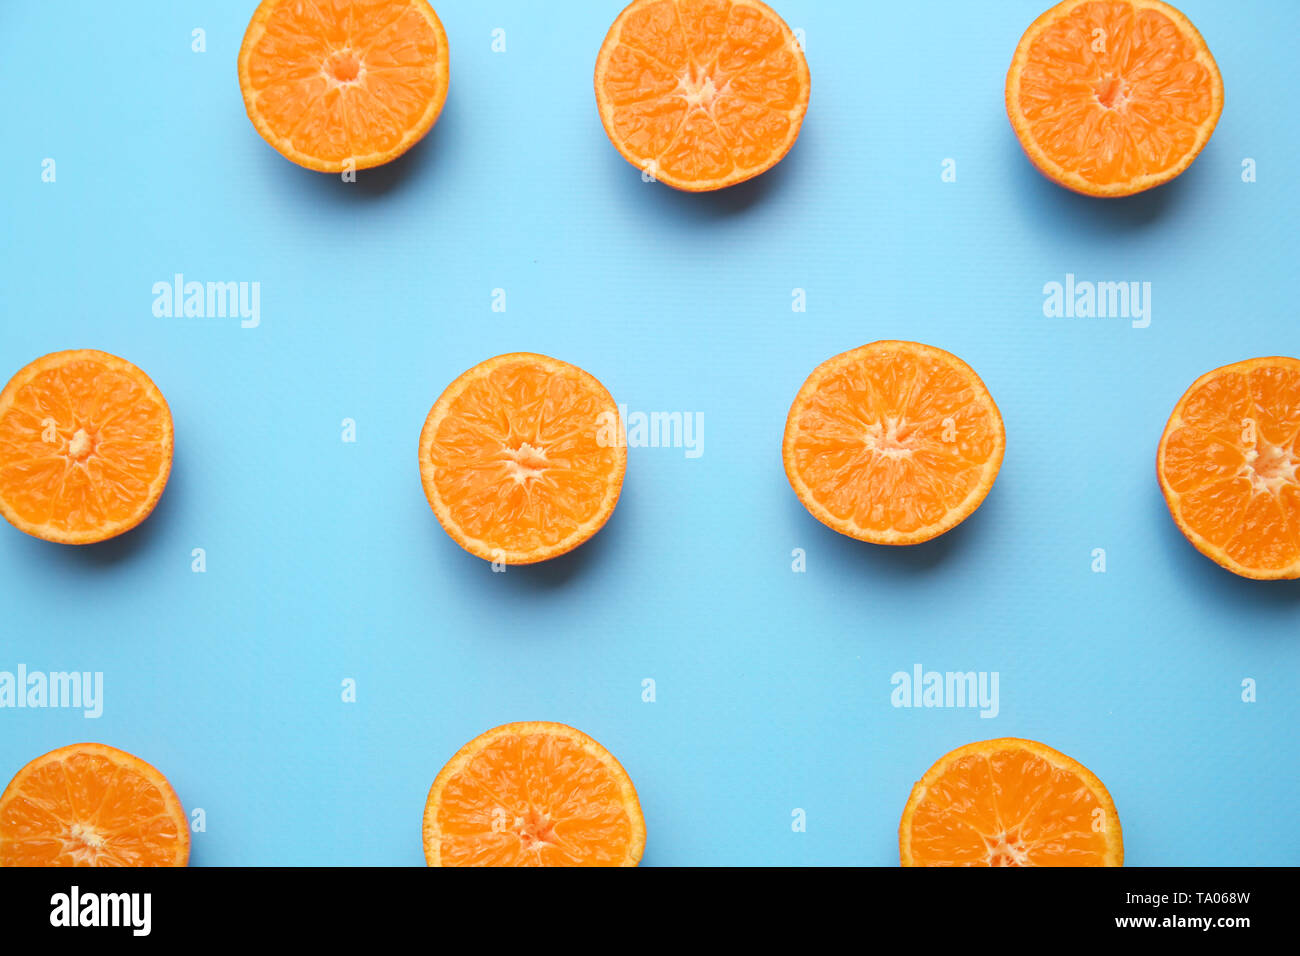 Many pieces of orange on color background - Stock Image